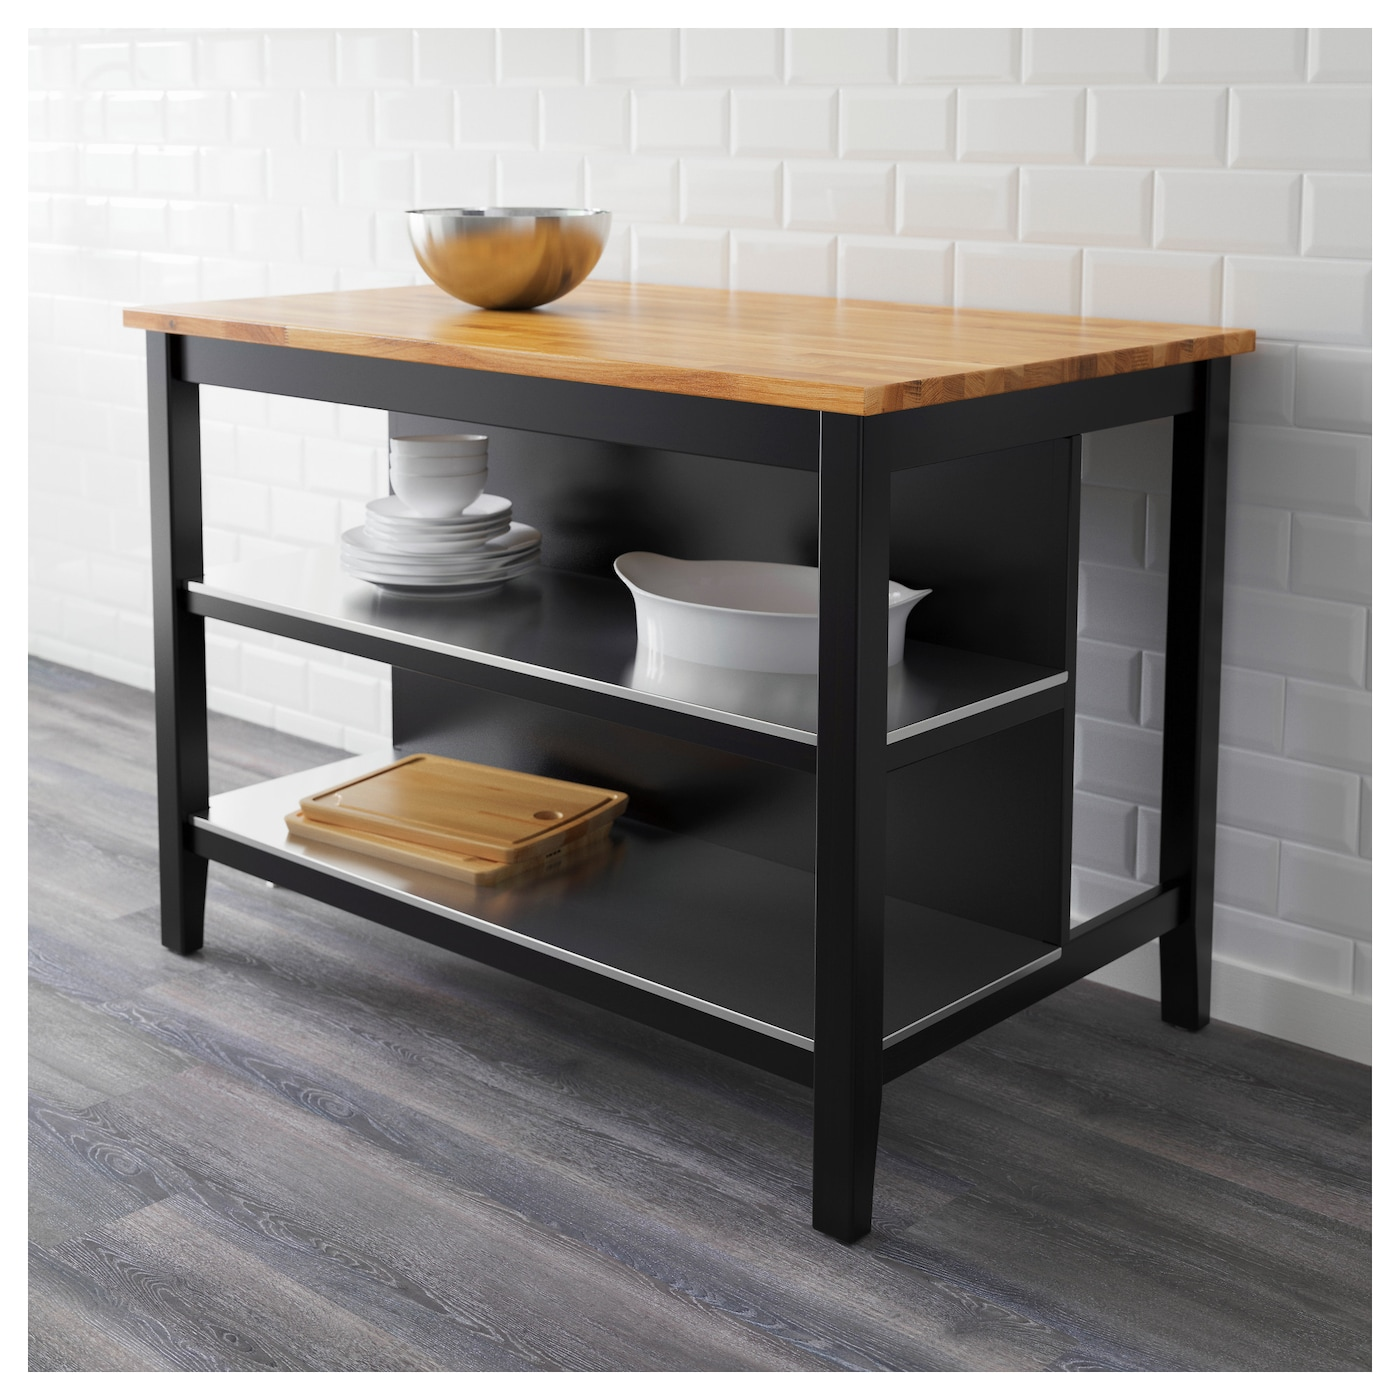 Kitchen Island Black Brown Oak